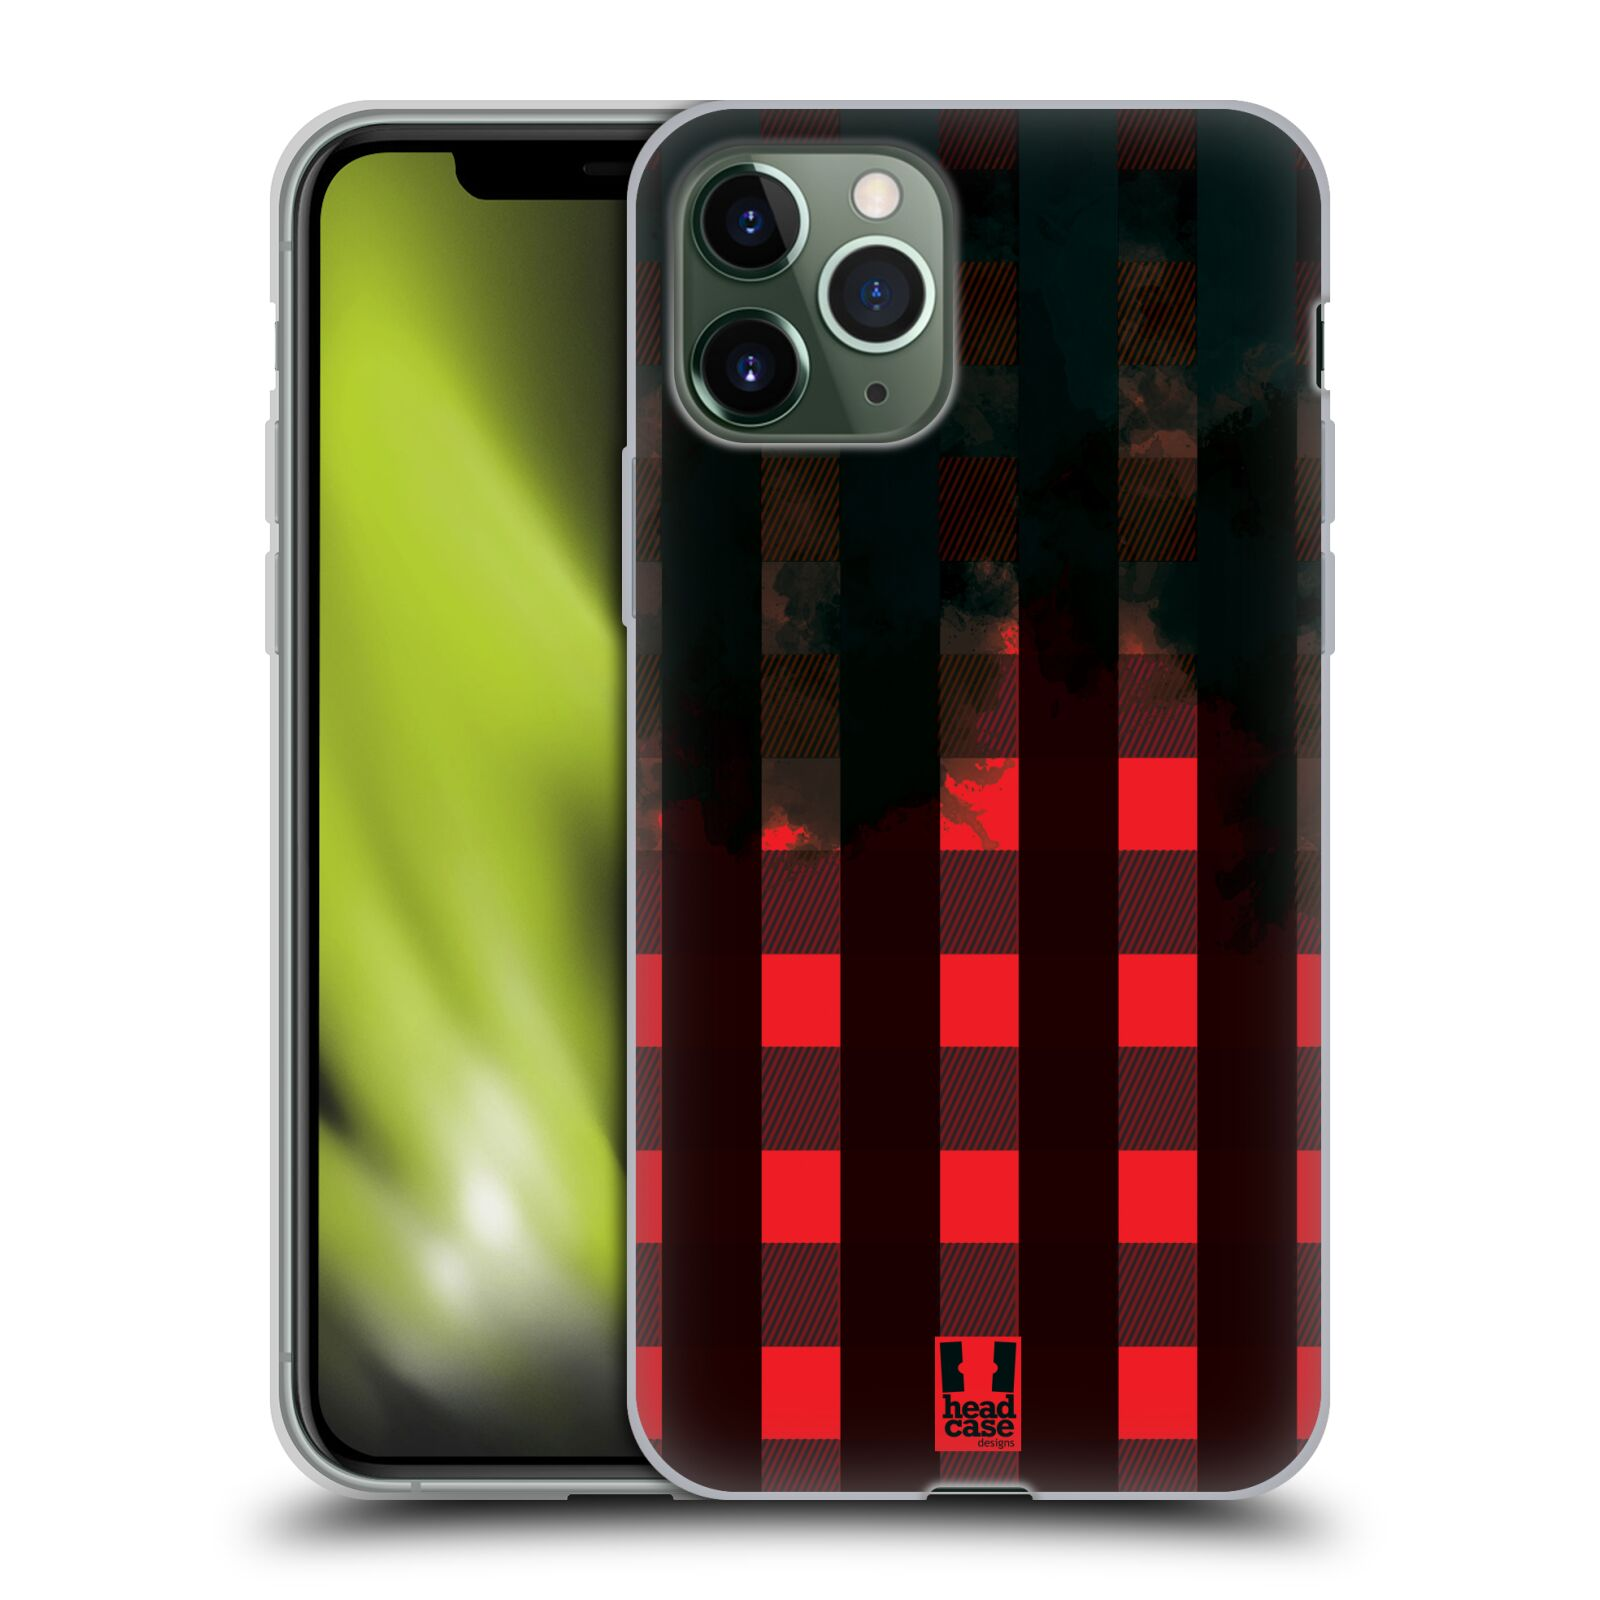 kryt na iphone 6 s - Silikonové pouzdro na mobil Apple iPhone 11 Pro - Head Case - FLANEL RED BLACK